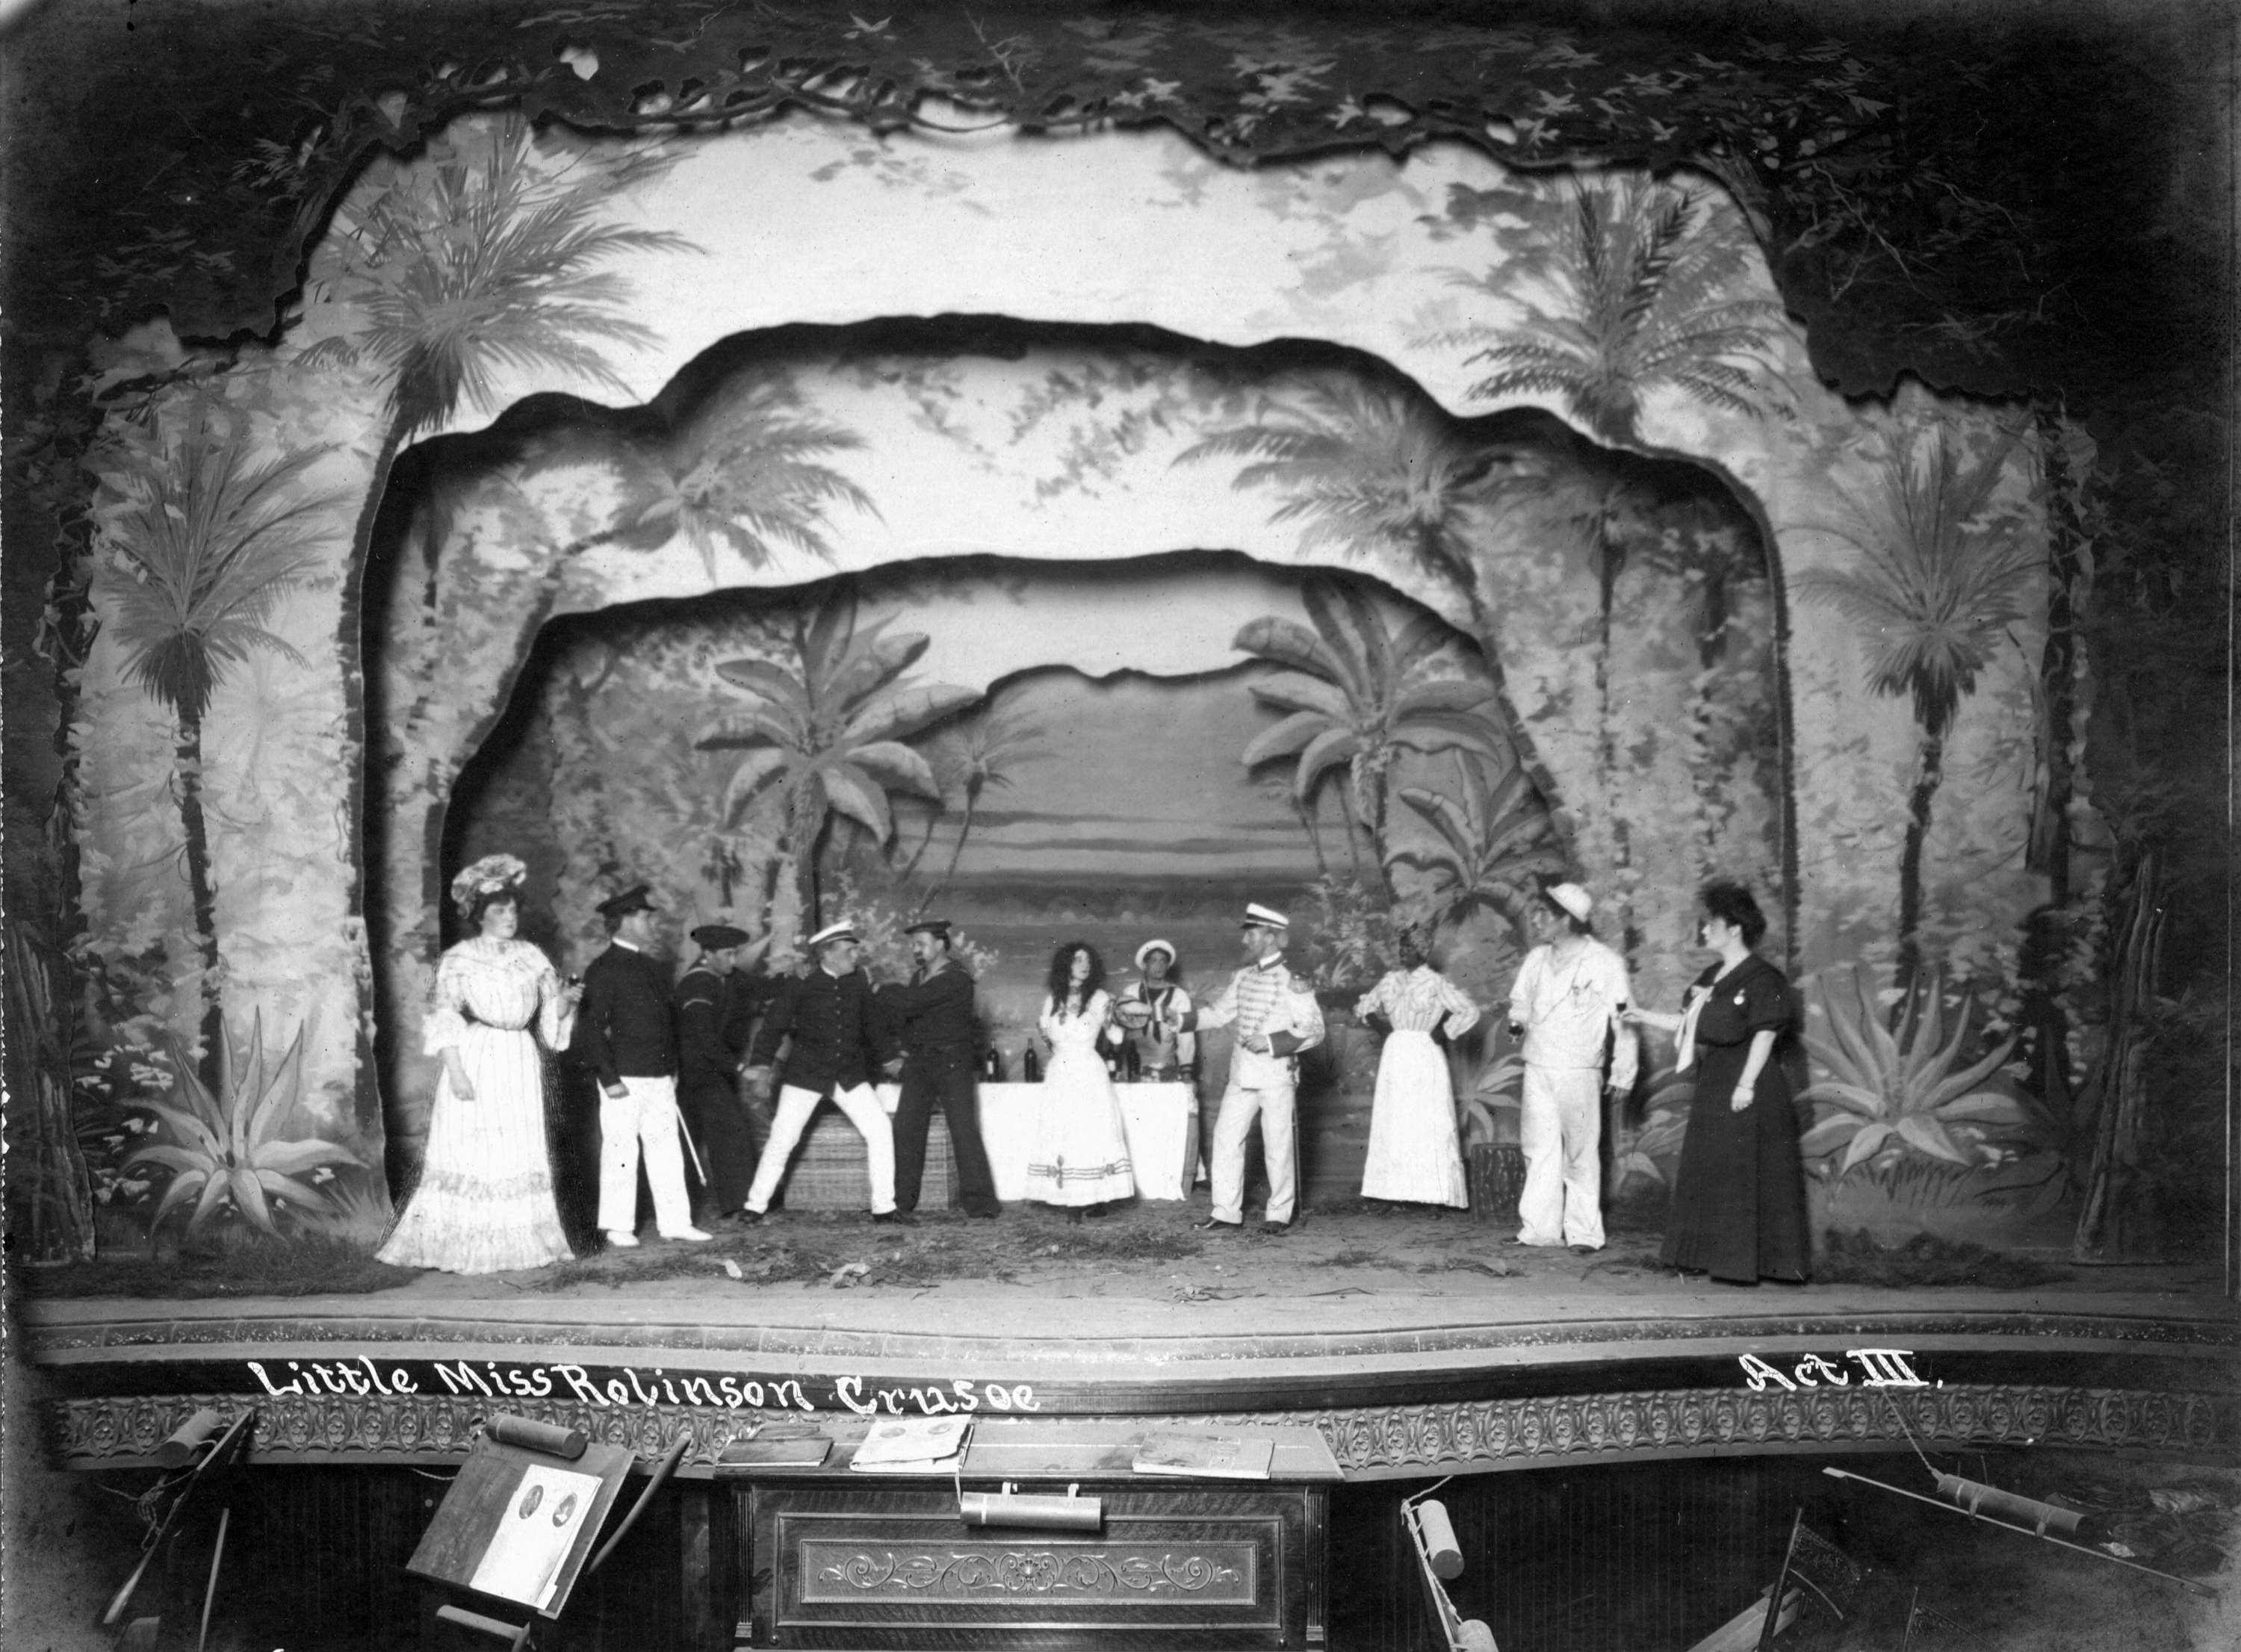 vaudeville theatre Get information, facts, and pictures about vaudeville at encyclopediacom make research projects and school reports about vaudeville easy with credible articles from our free, online.